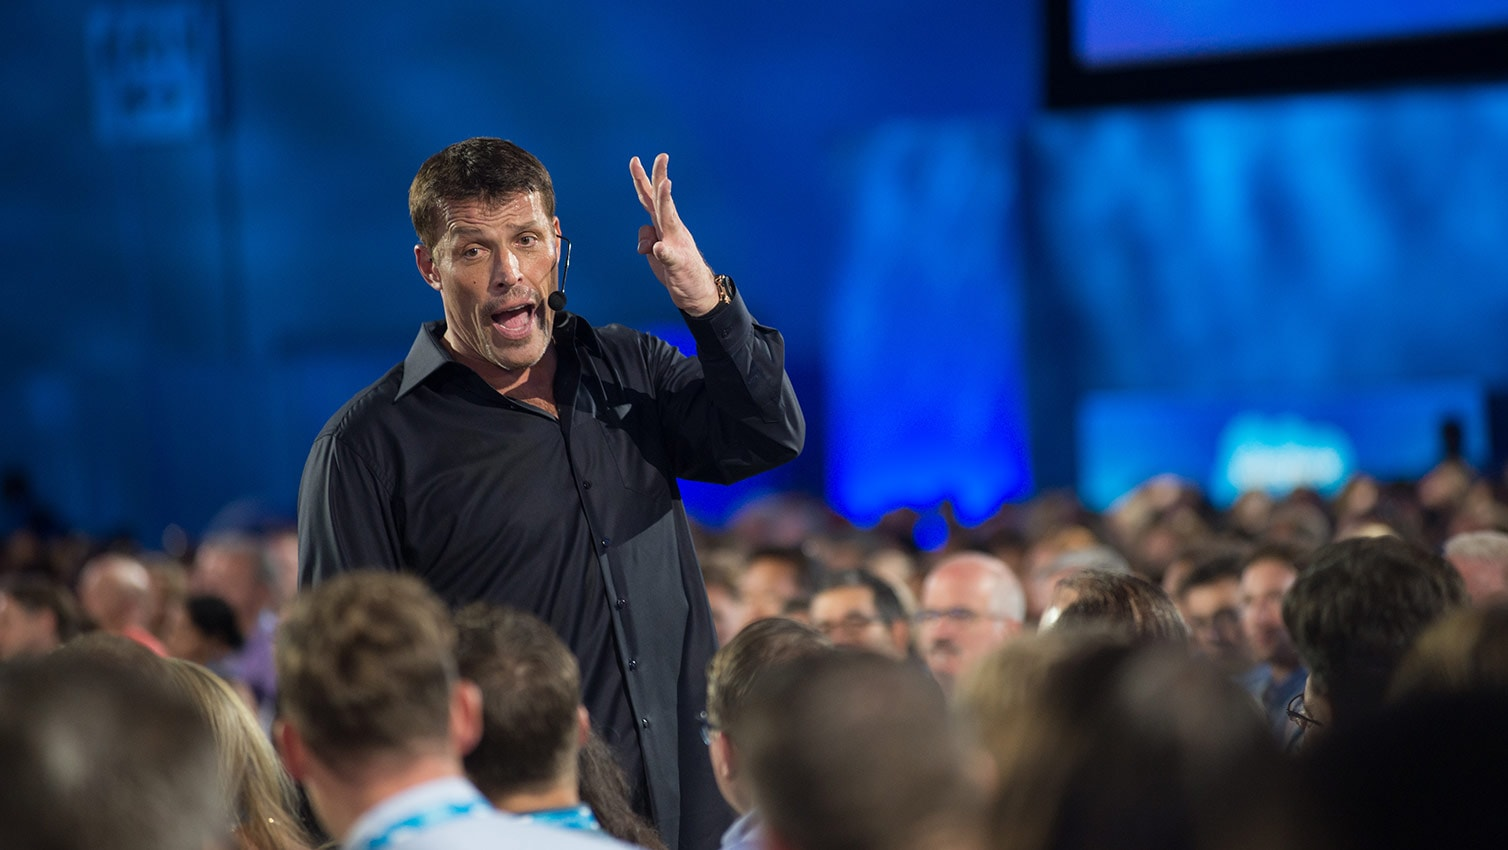 Tony Robbins – Peak Performance